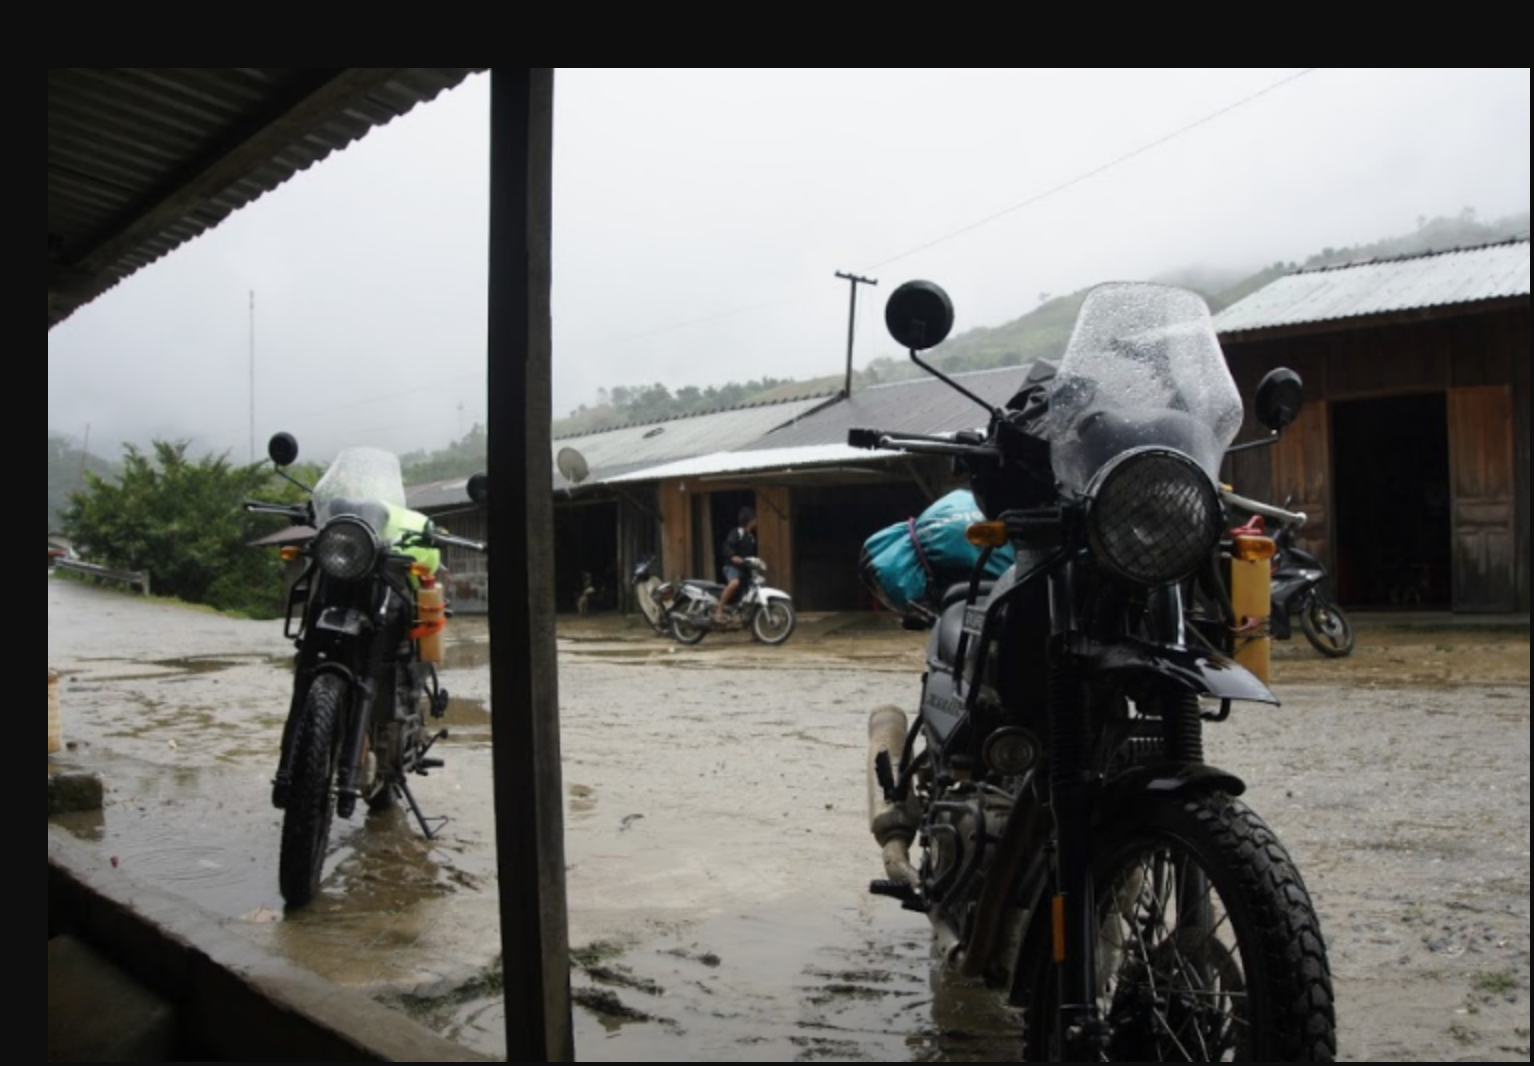 a rainy day to go on a motorbike tour in Vietnam